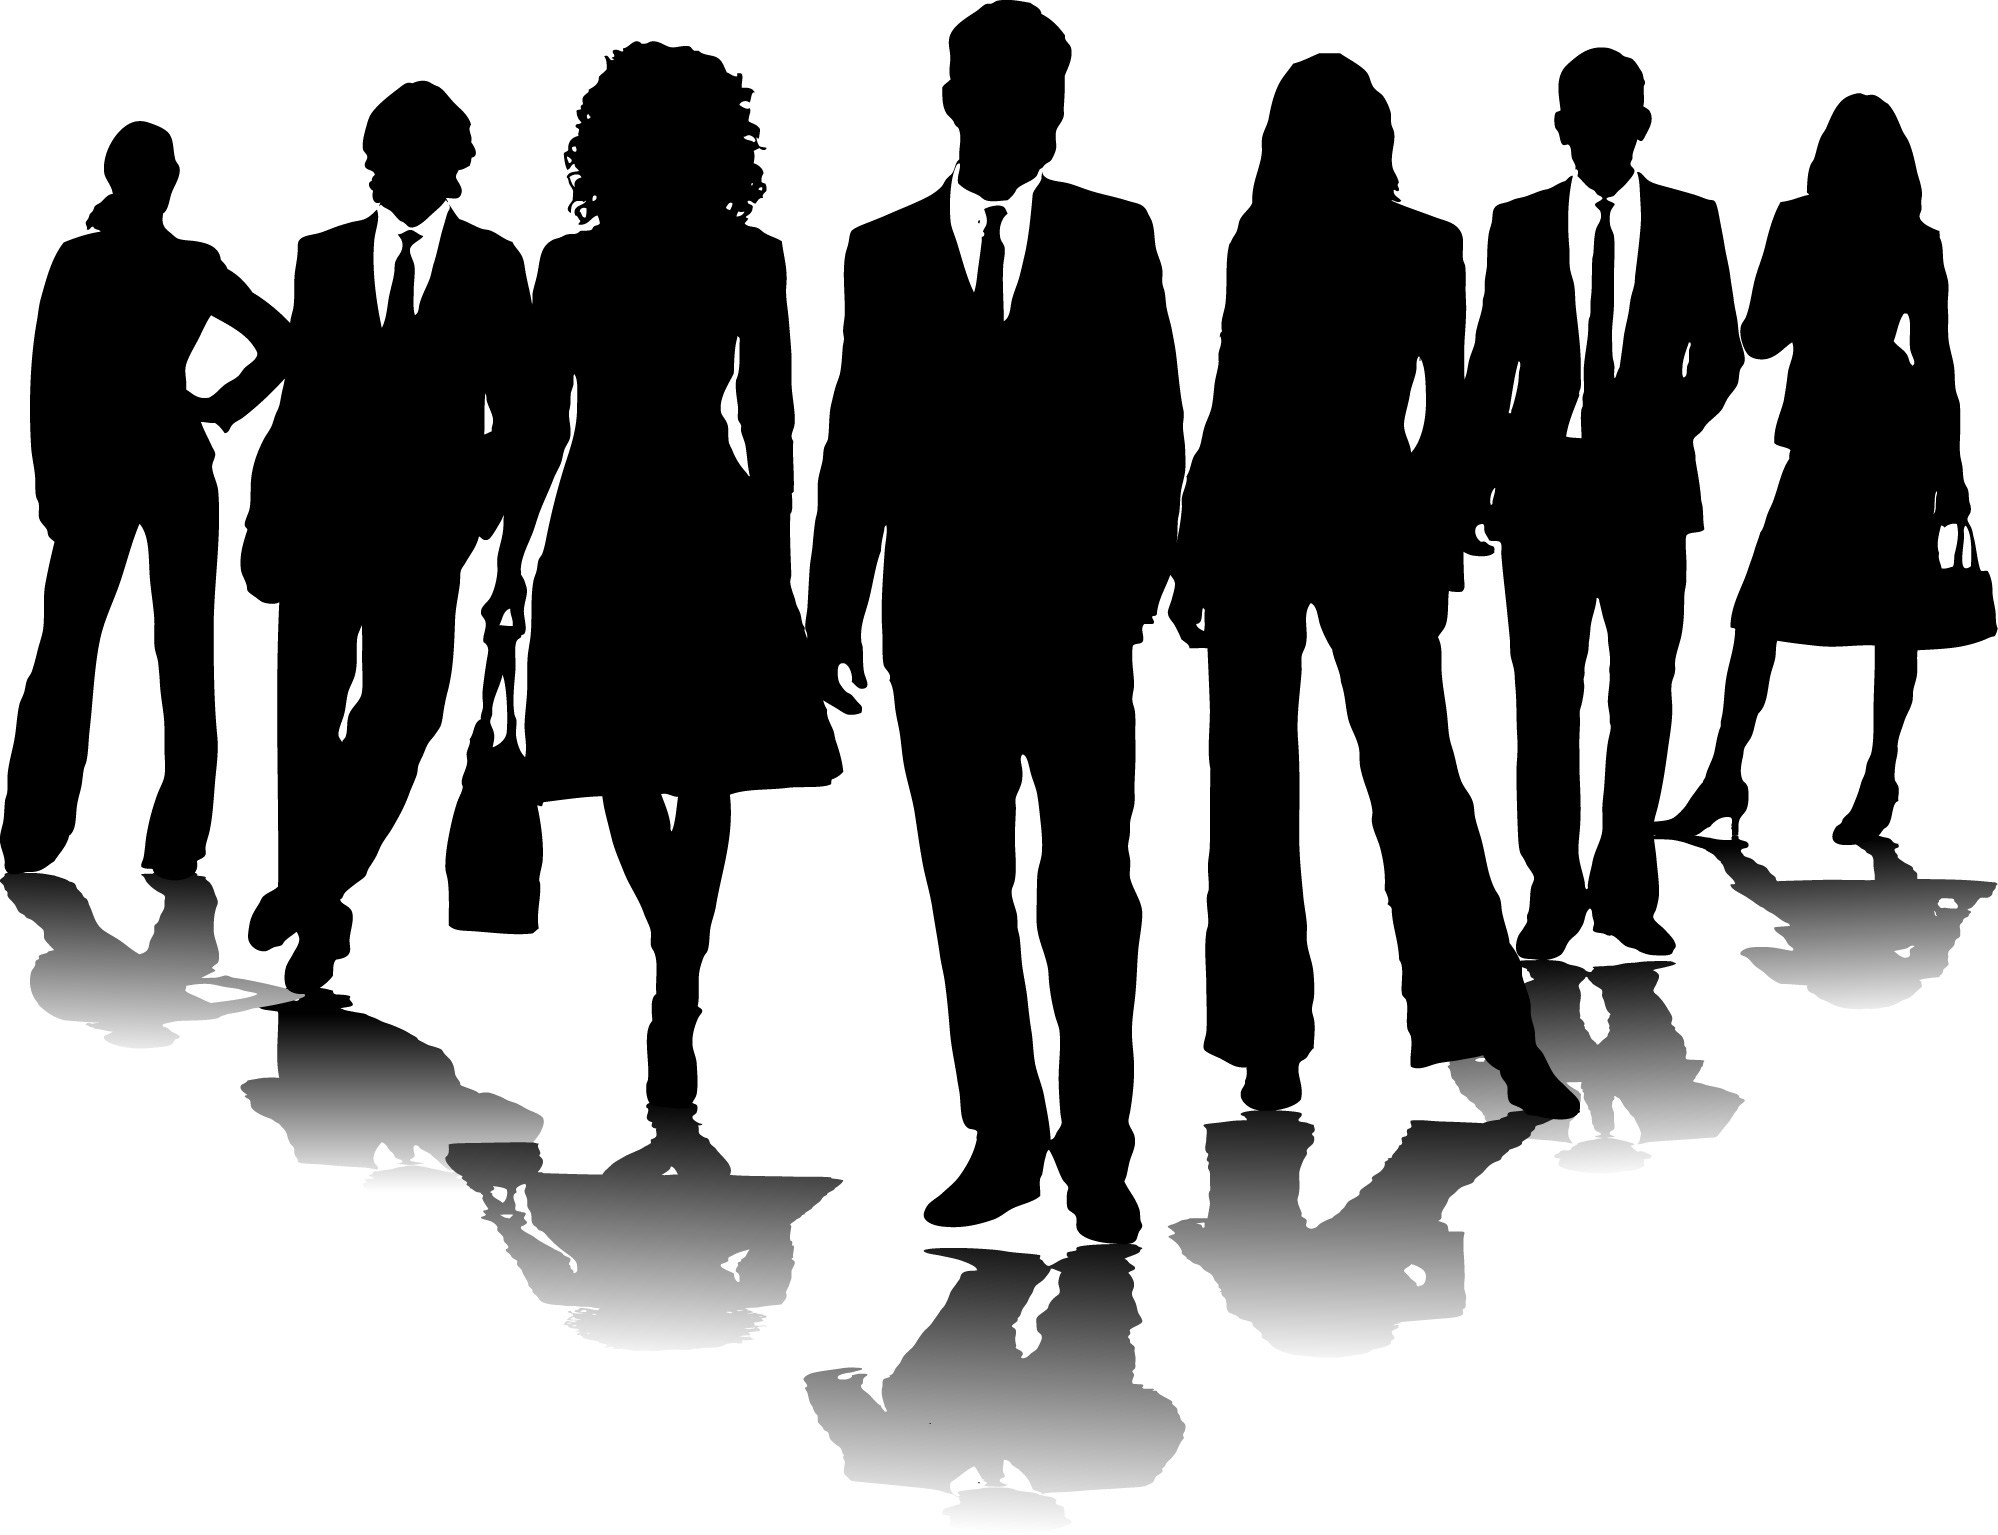 Employee clipart black and white 4 » Clipart Portal picture transparent stock